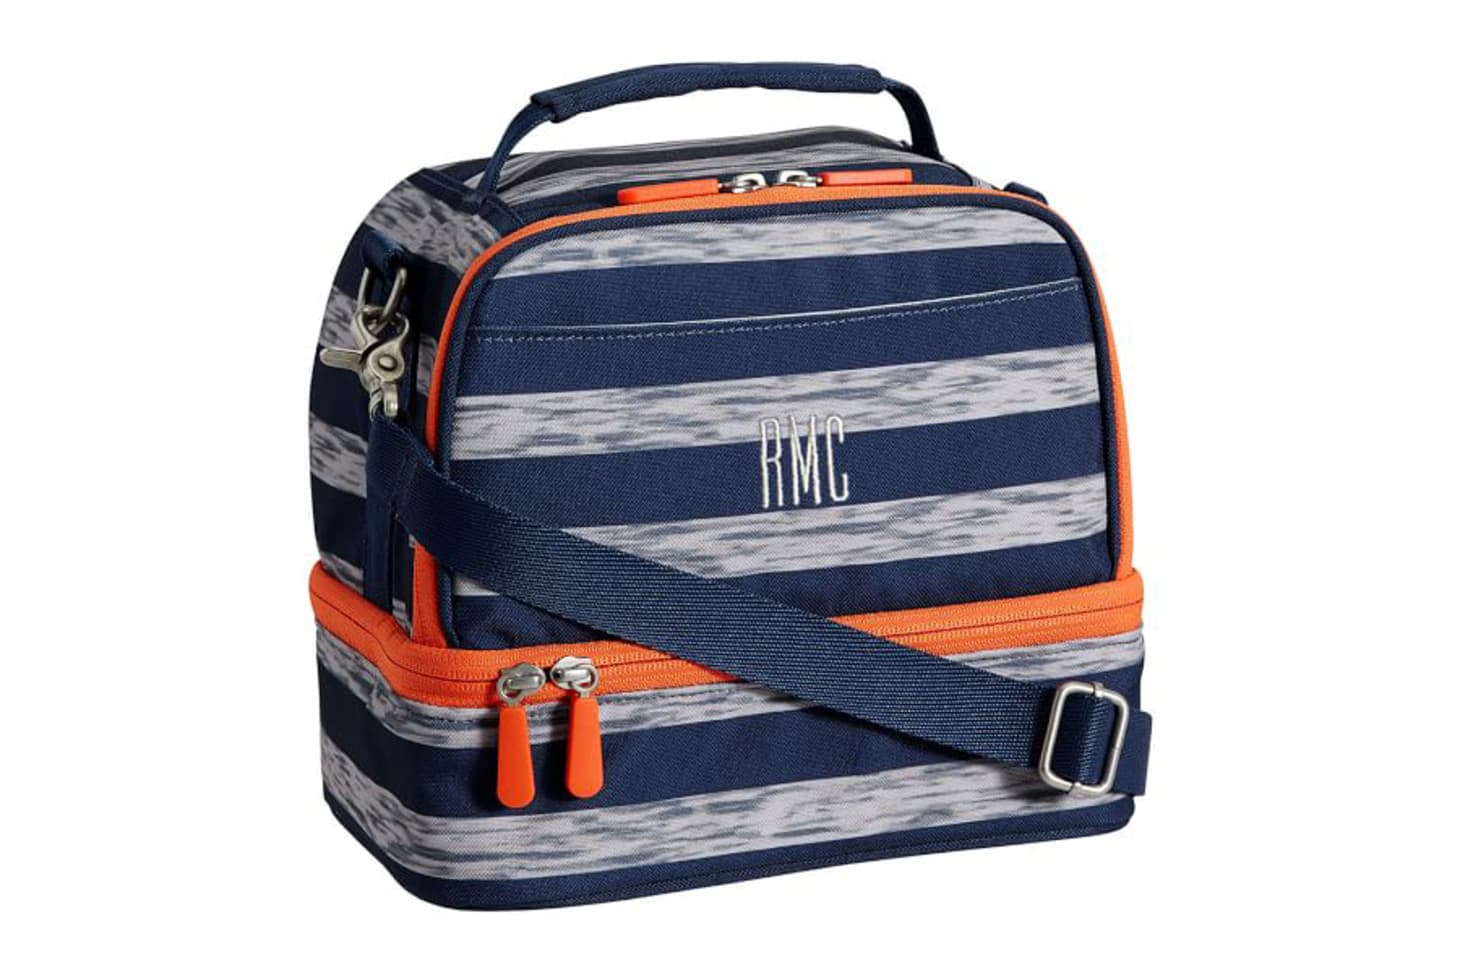 68de552e8e2e 12 Top-Rated Lunch Boxes & Bags for Kids of All Ages | Apartment Therapy